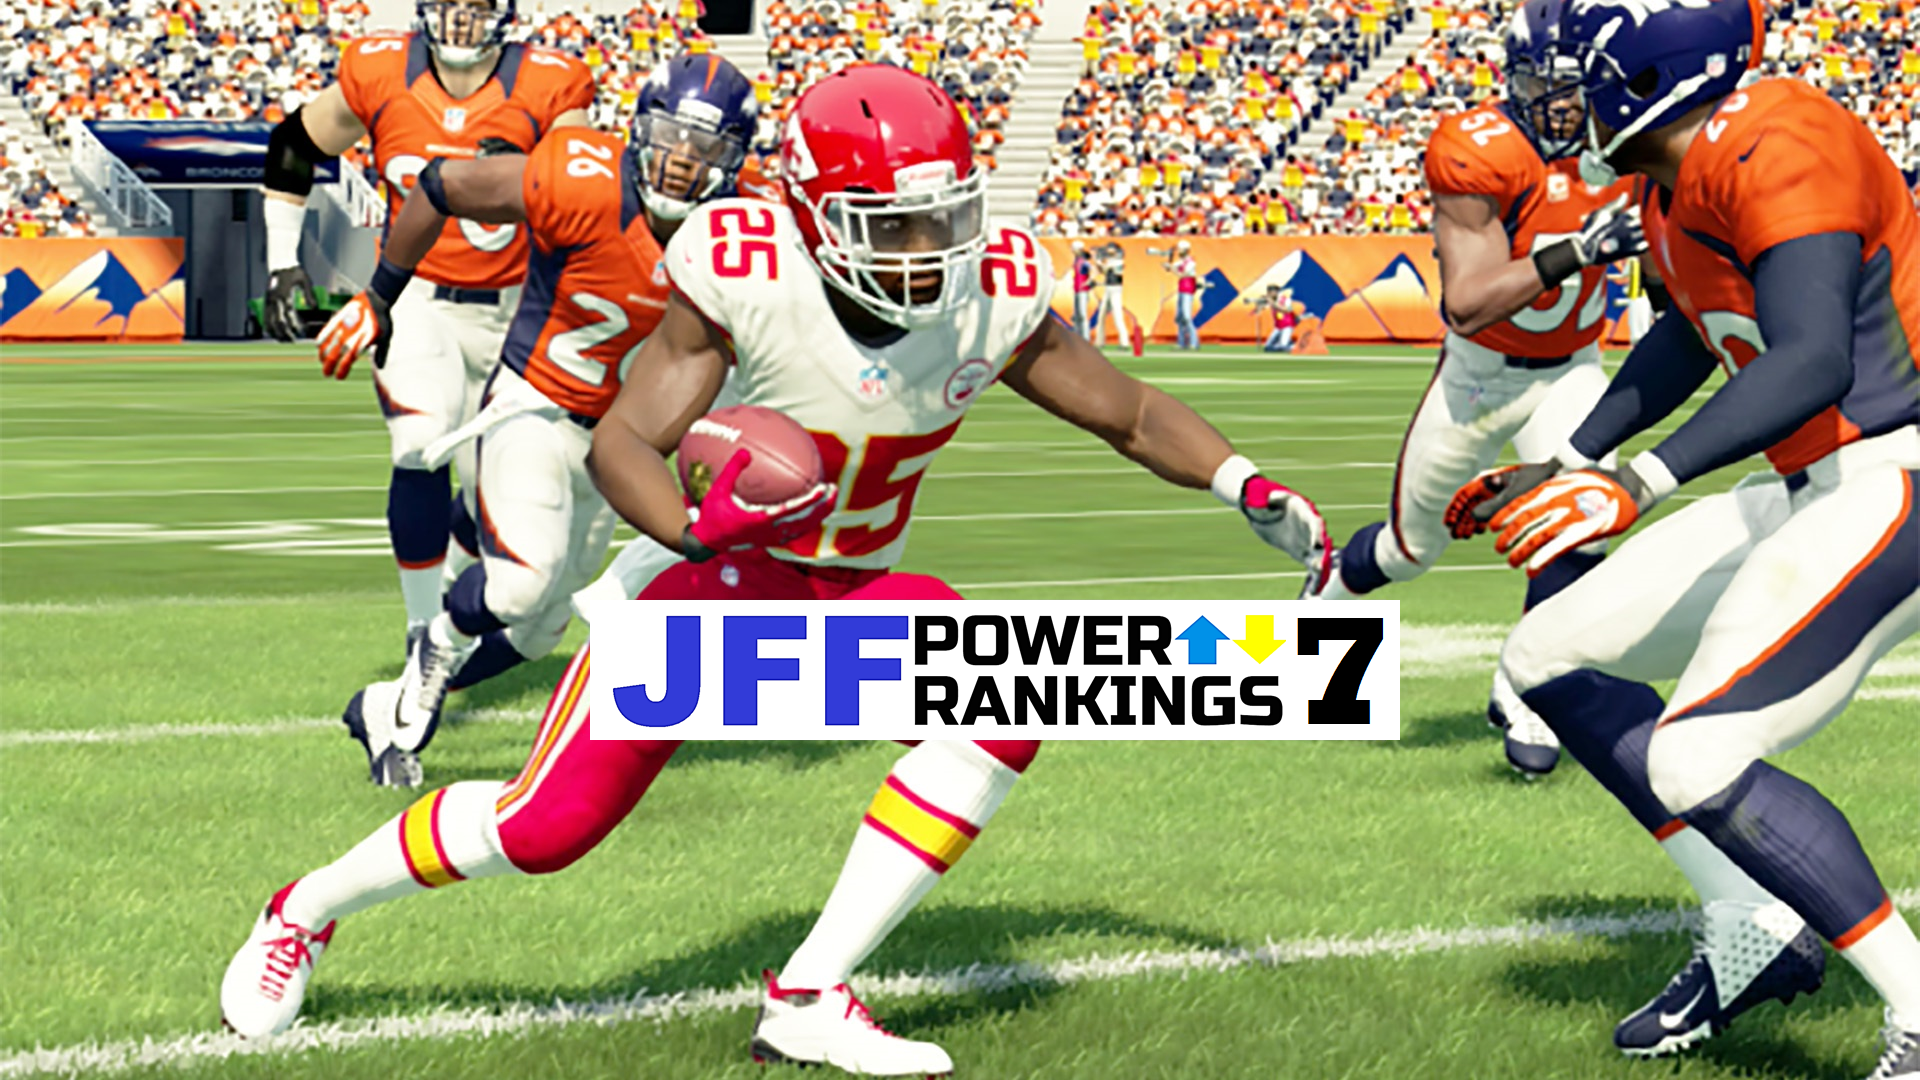 JFF Power Rankings - Installment #7